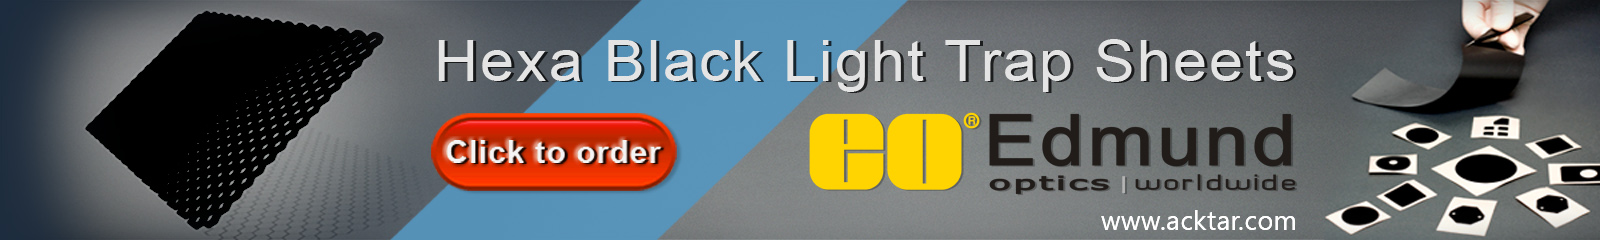 hexa black light trap sheets banner